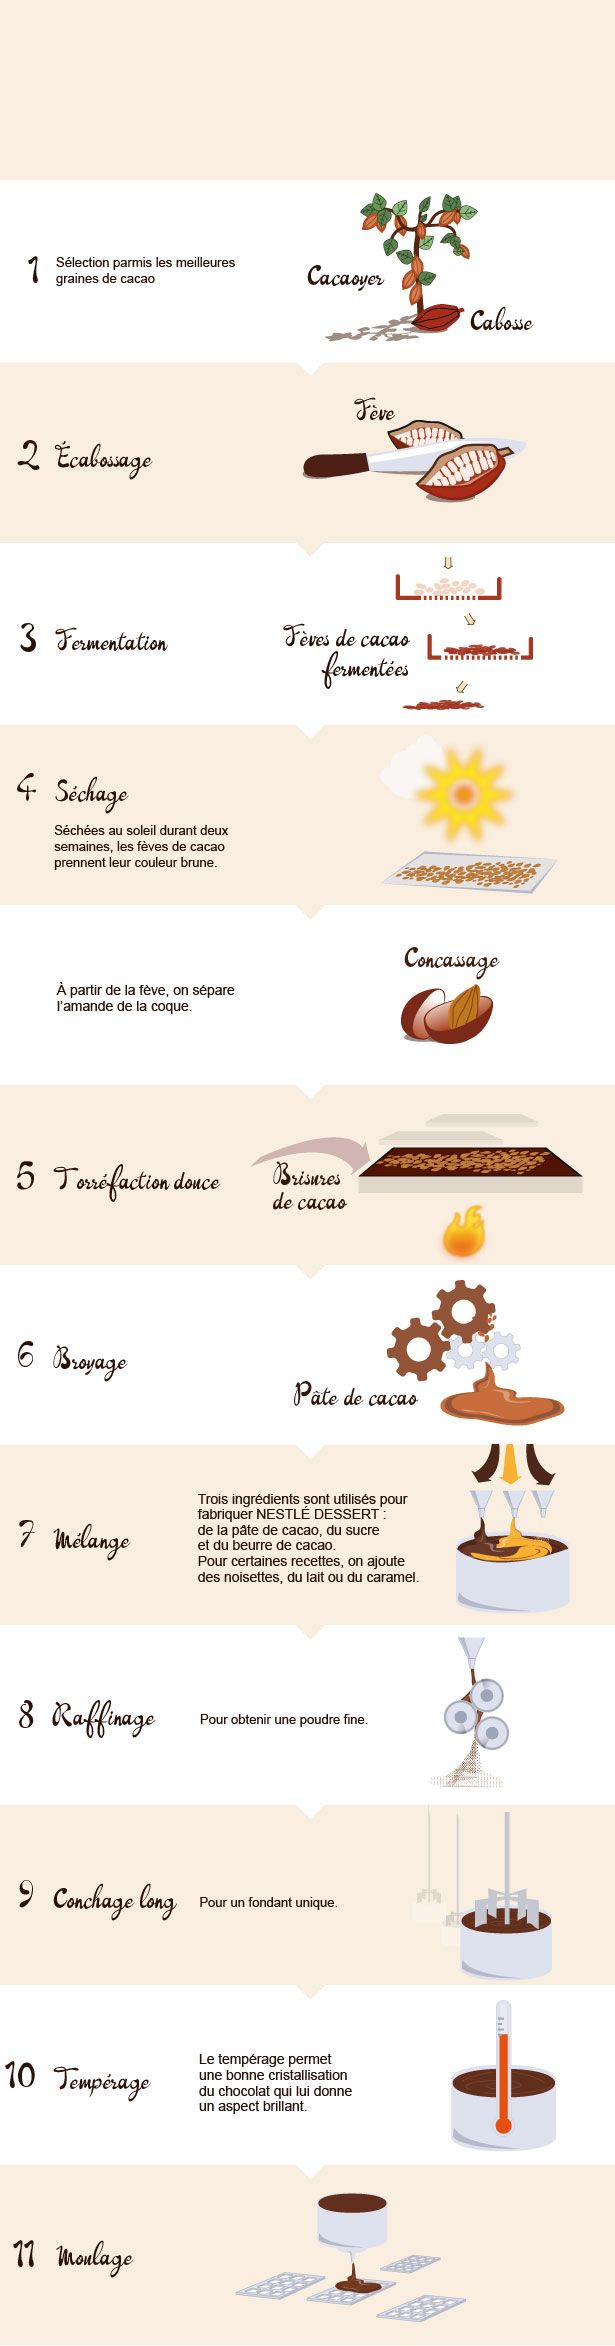 fabrication des tablettes de chocolat